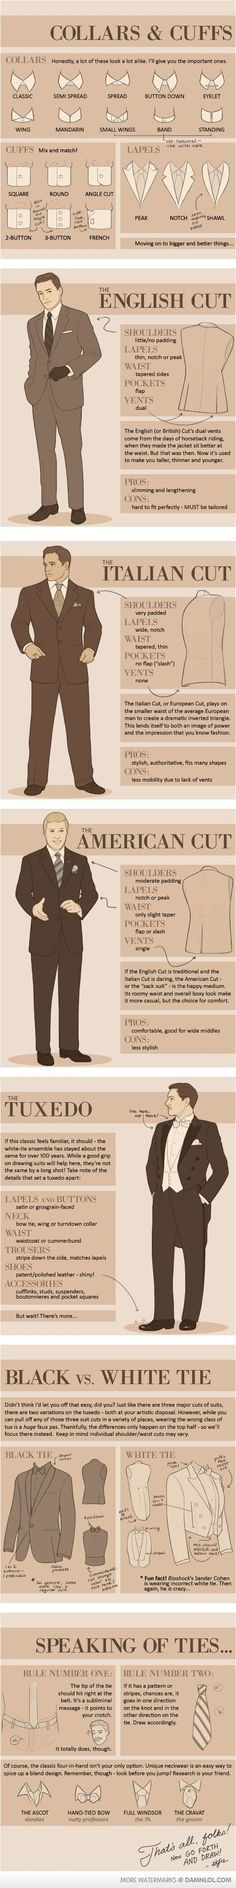 Style references for male fashion...My son will have a while new outlook on suits. He likes to look good in his suits.